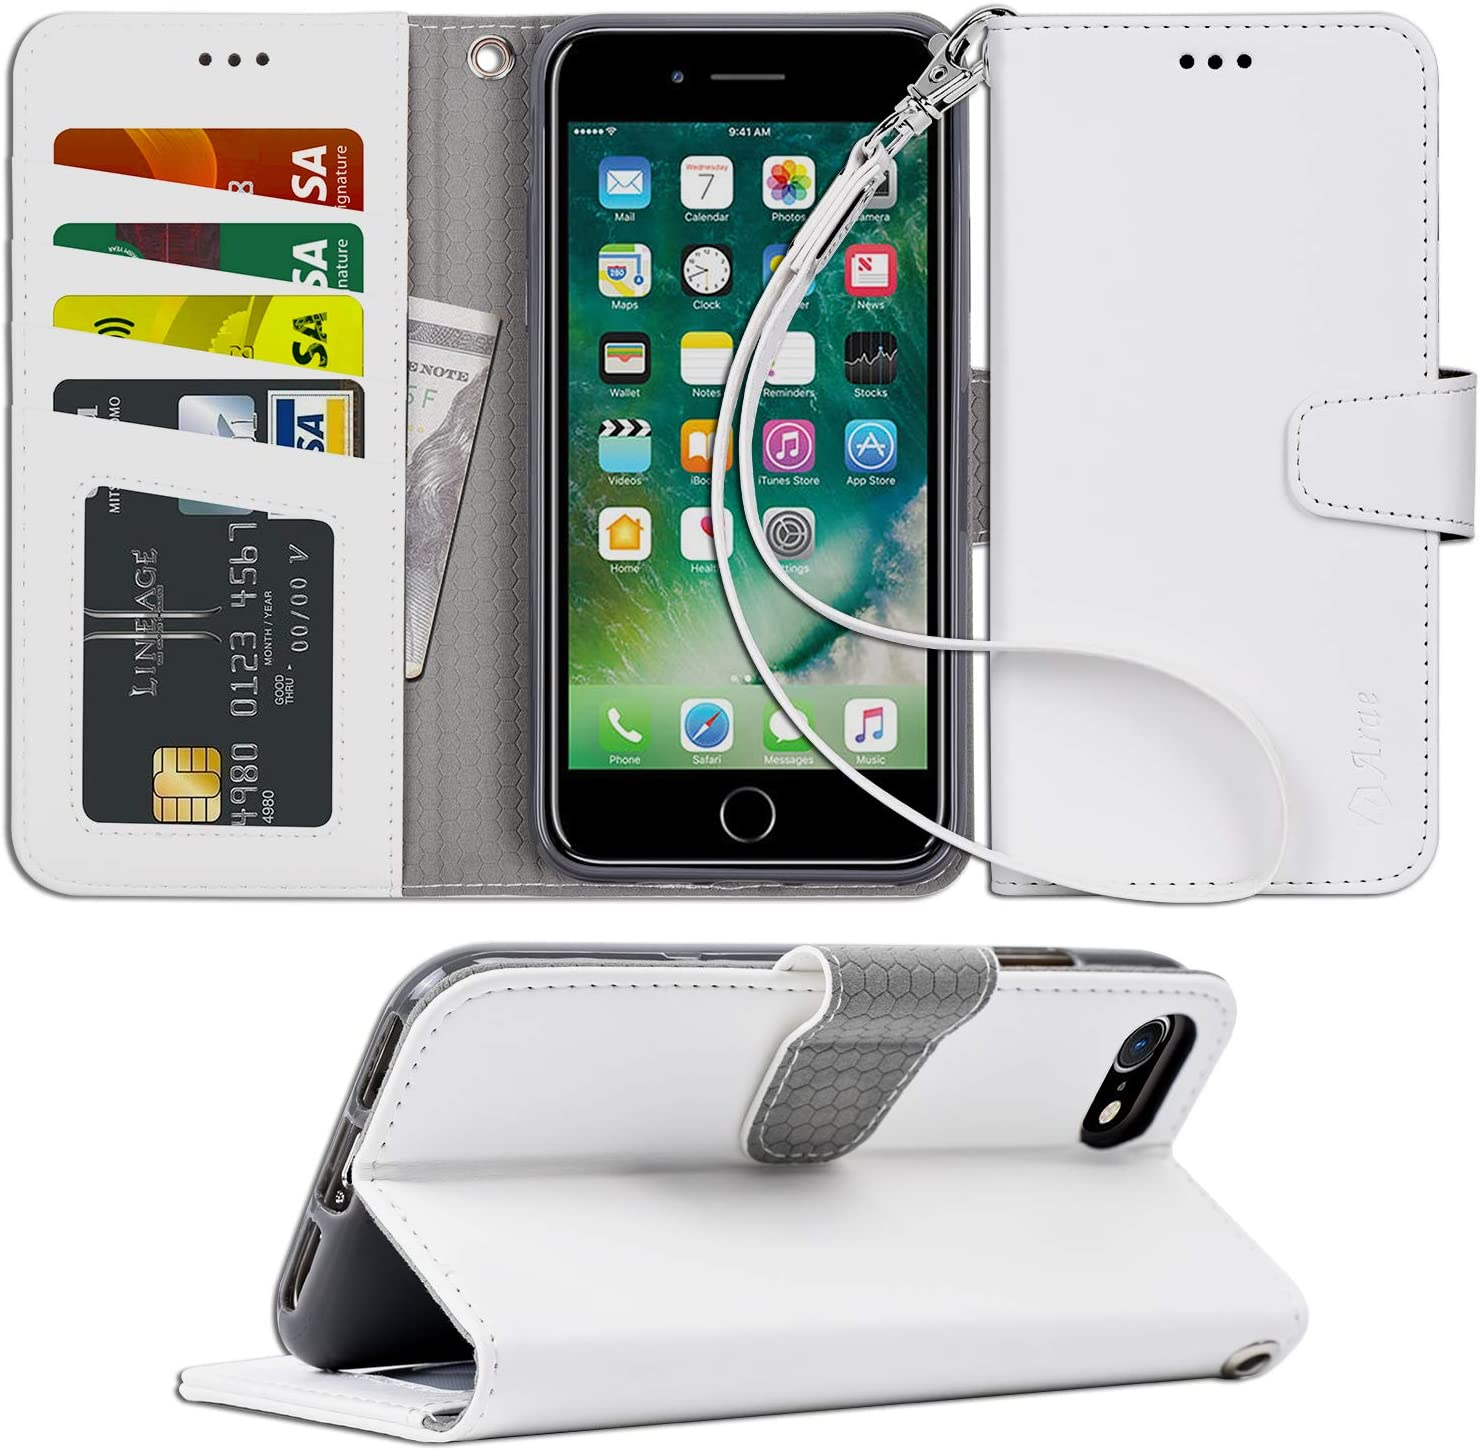 Arae Case for iPhone 7 / iPhone 8, Premium PU Leather Wallet Case with Kickstand and Flip Cover for iPhone 7 (2016) / iPhone 8 (2017) 4.7 inch (not for iPhone 7/8 Plus) (White)